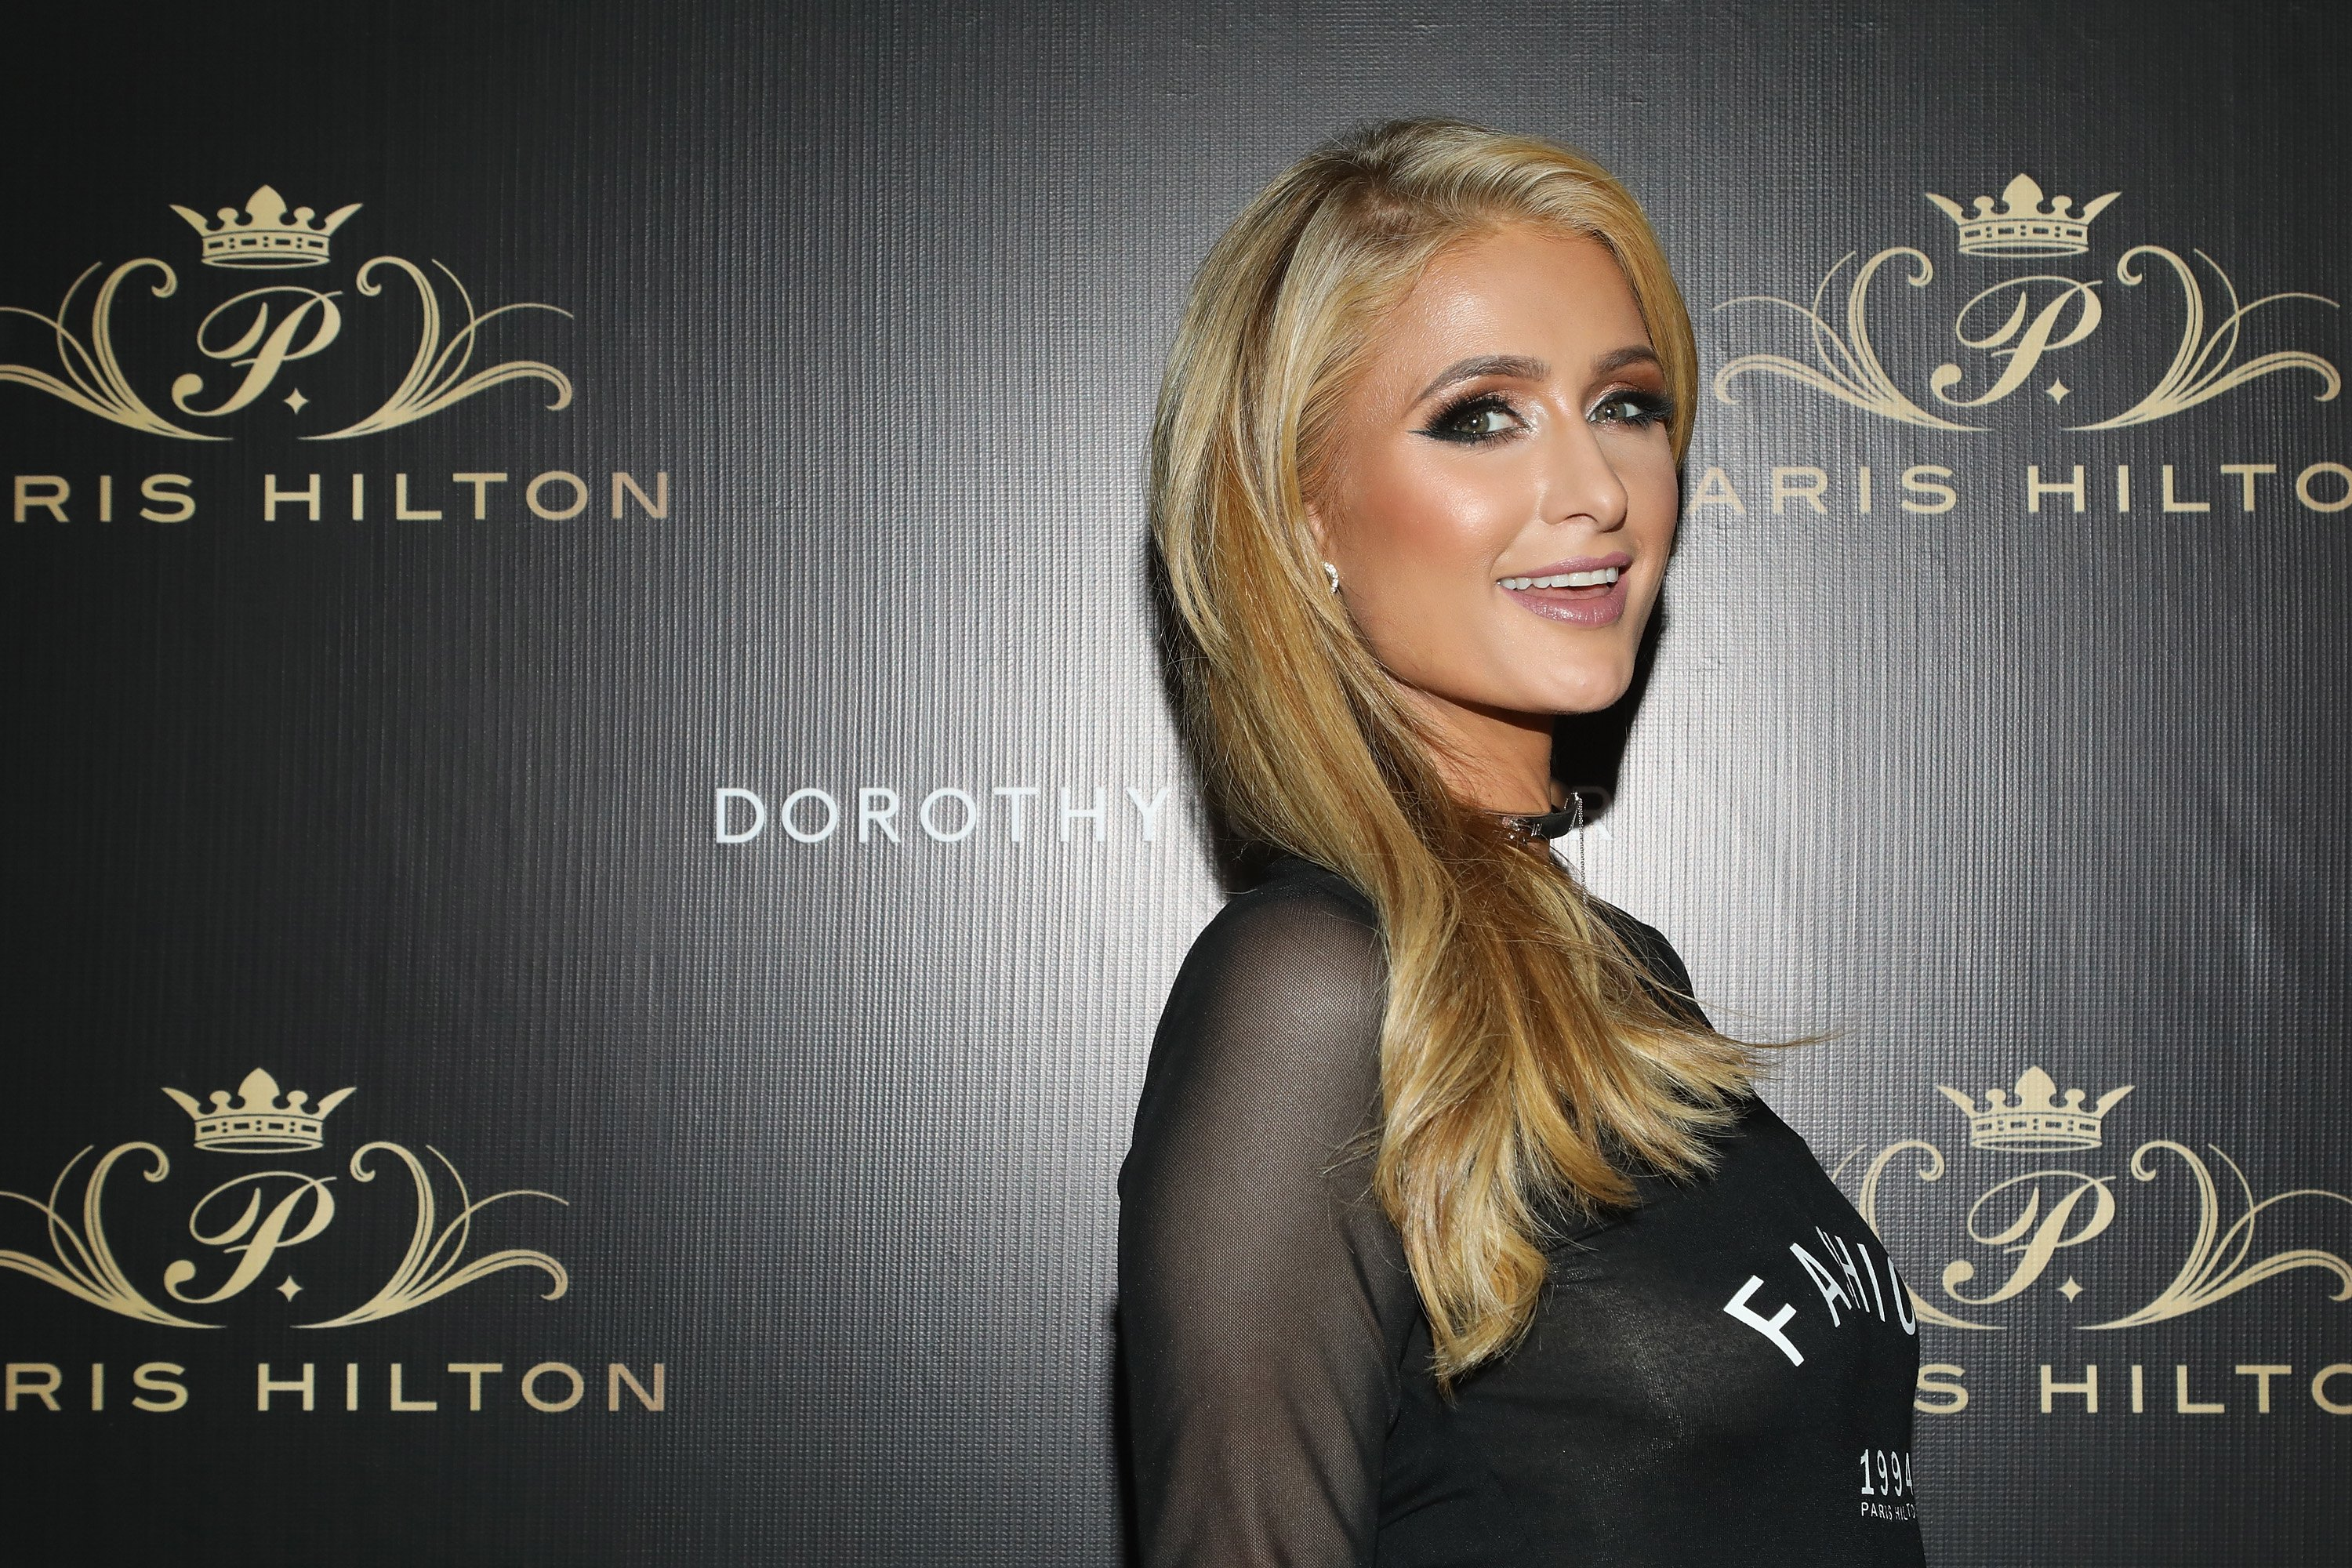 Paris Hilton attends the launch of her Dorothy Gaynor shoe line in Mexico City, Mexico on November 7, 2017 | Photo: Getty Images